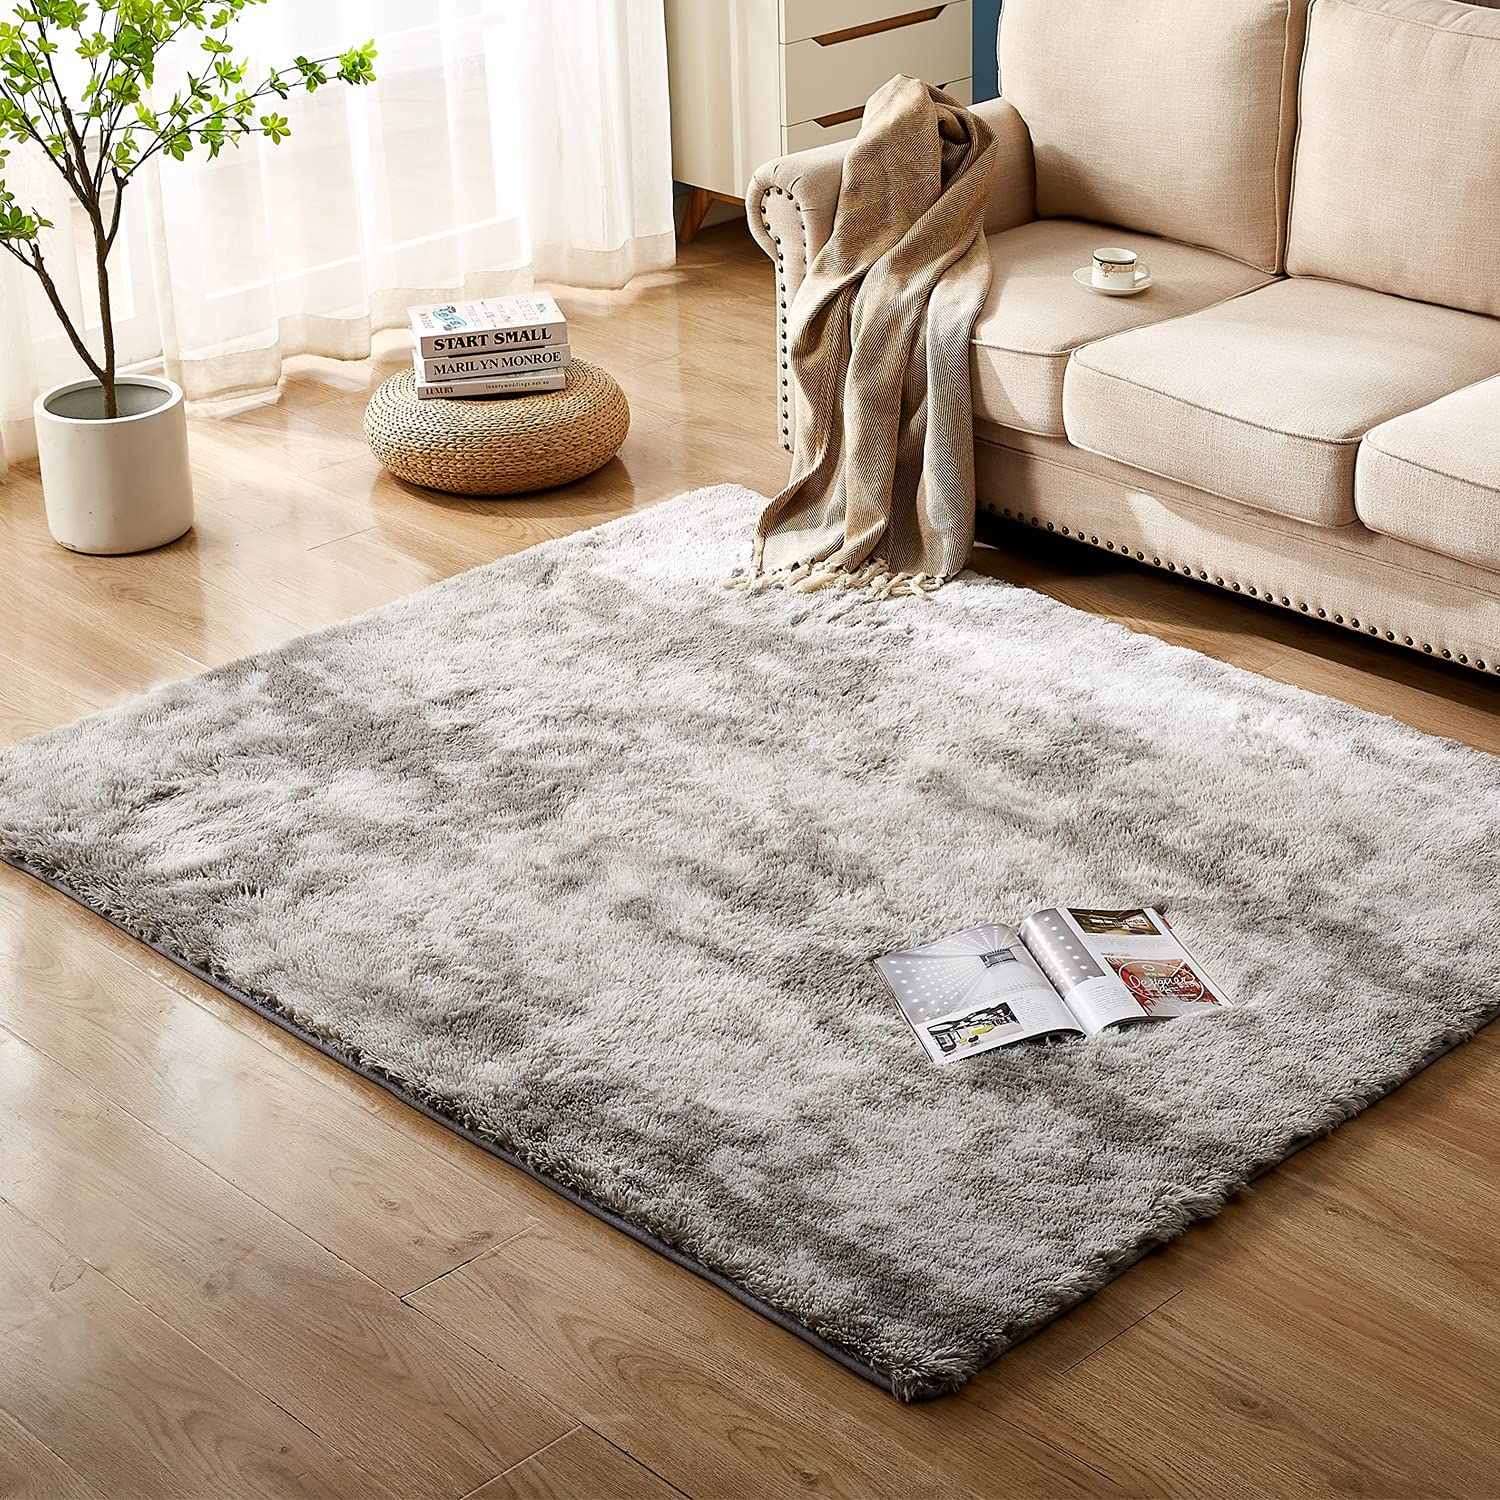 Popular product Floralux Ultra Soft Indoor Modern Area Rugs Popular product 5x8 Living Ro Fluffy